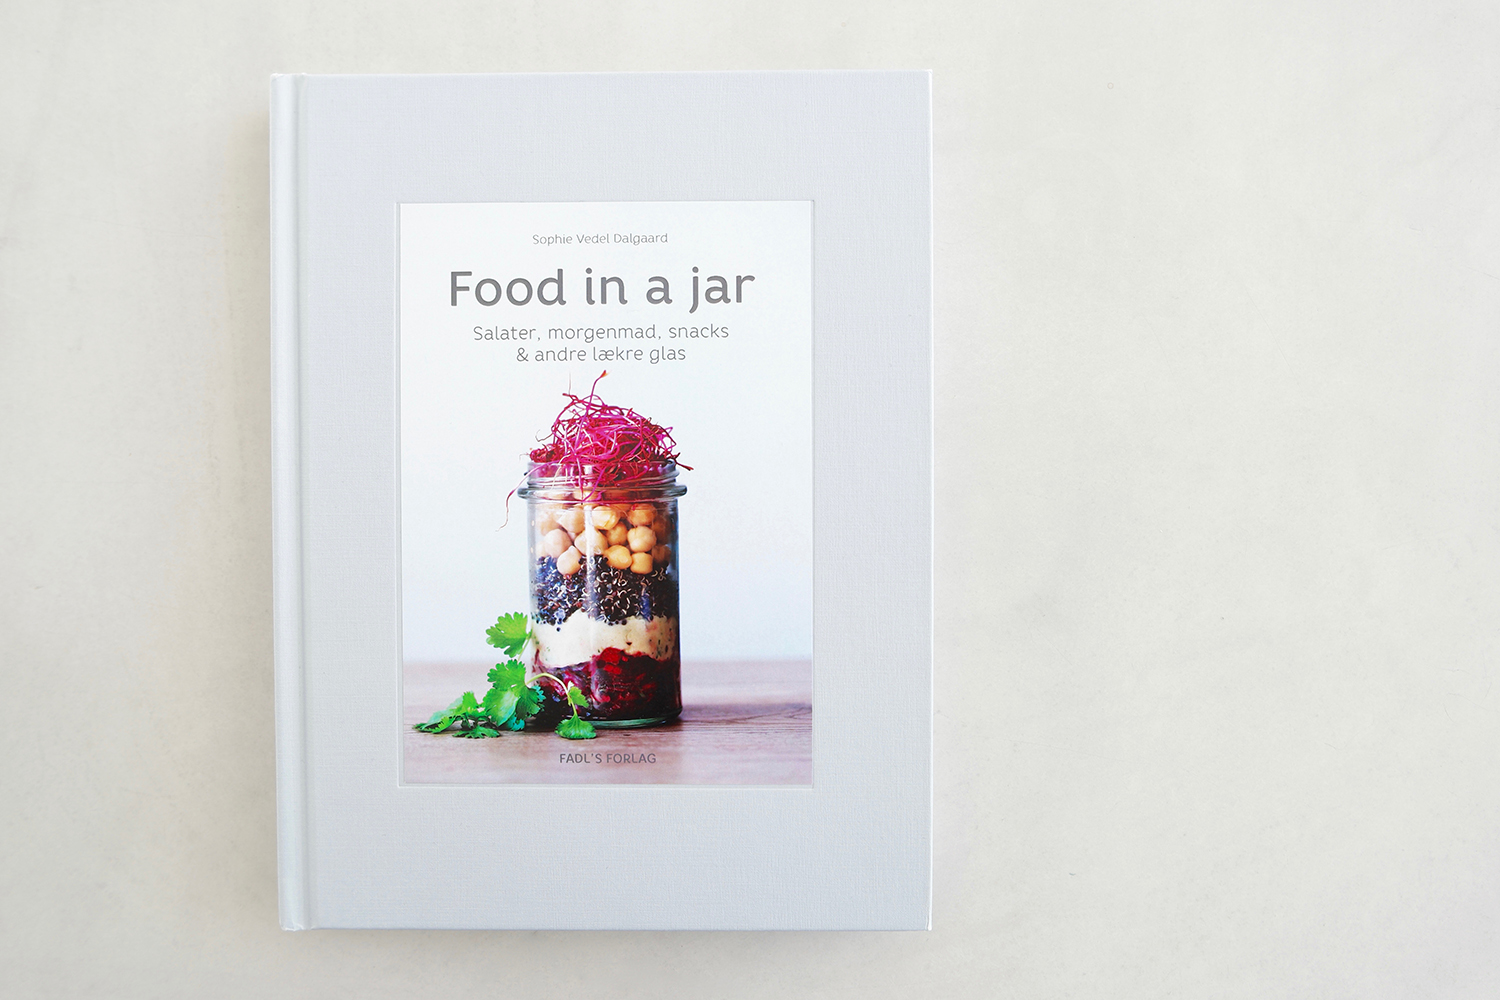 Food in a jar